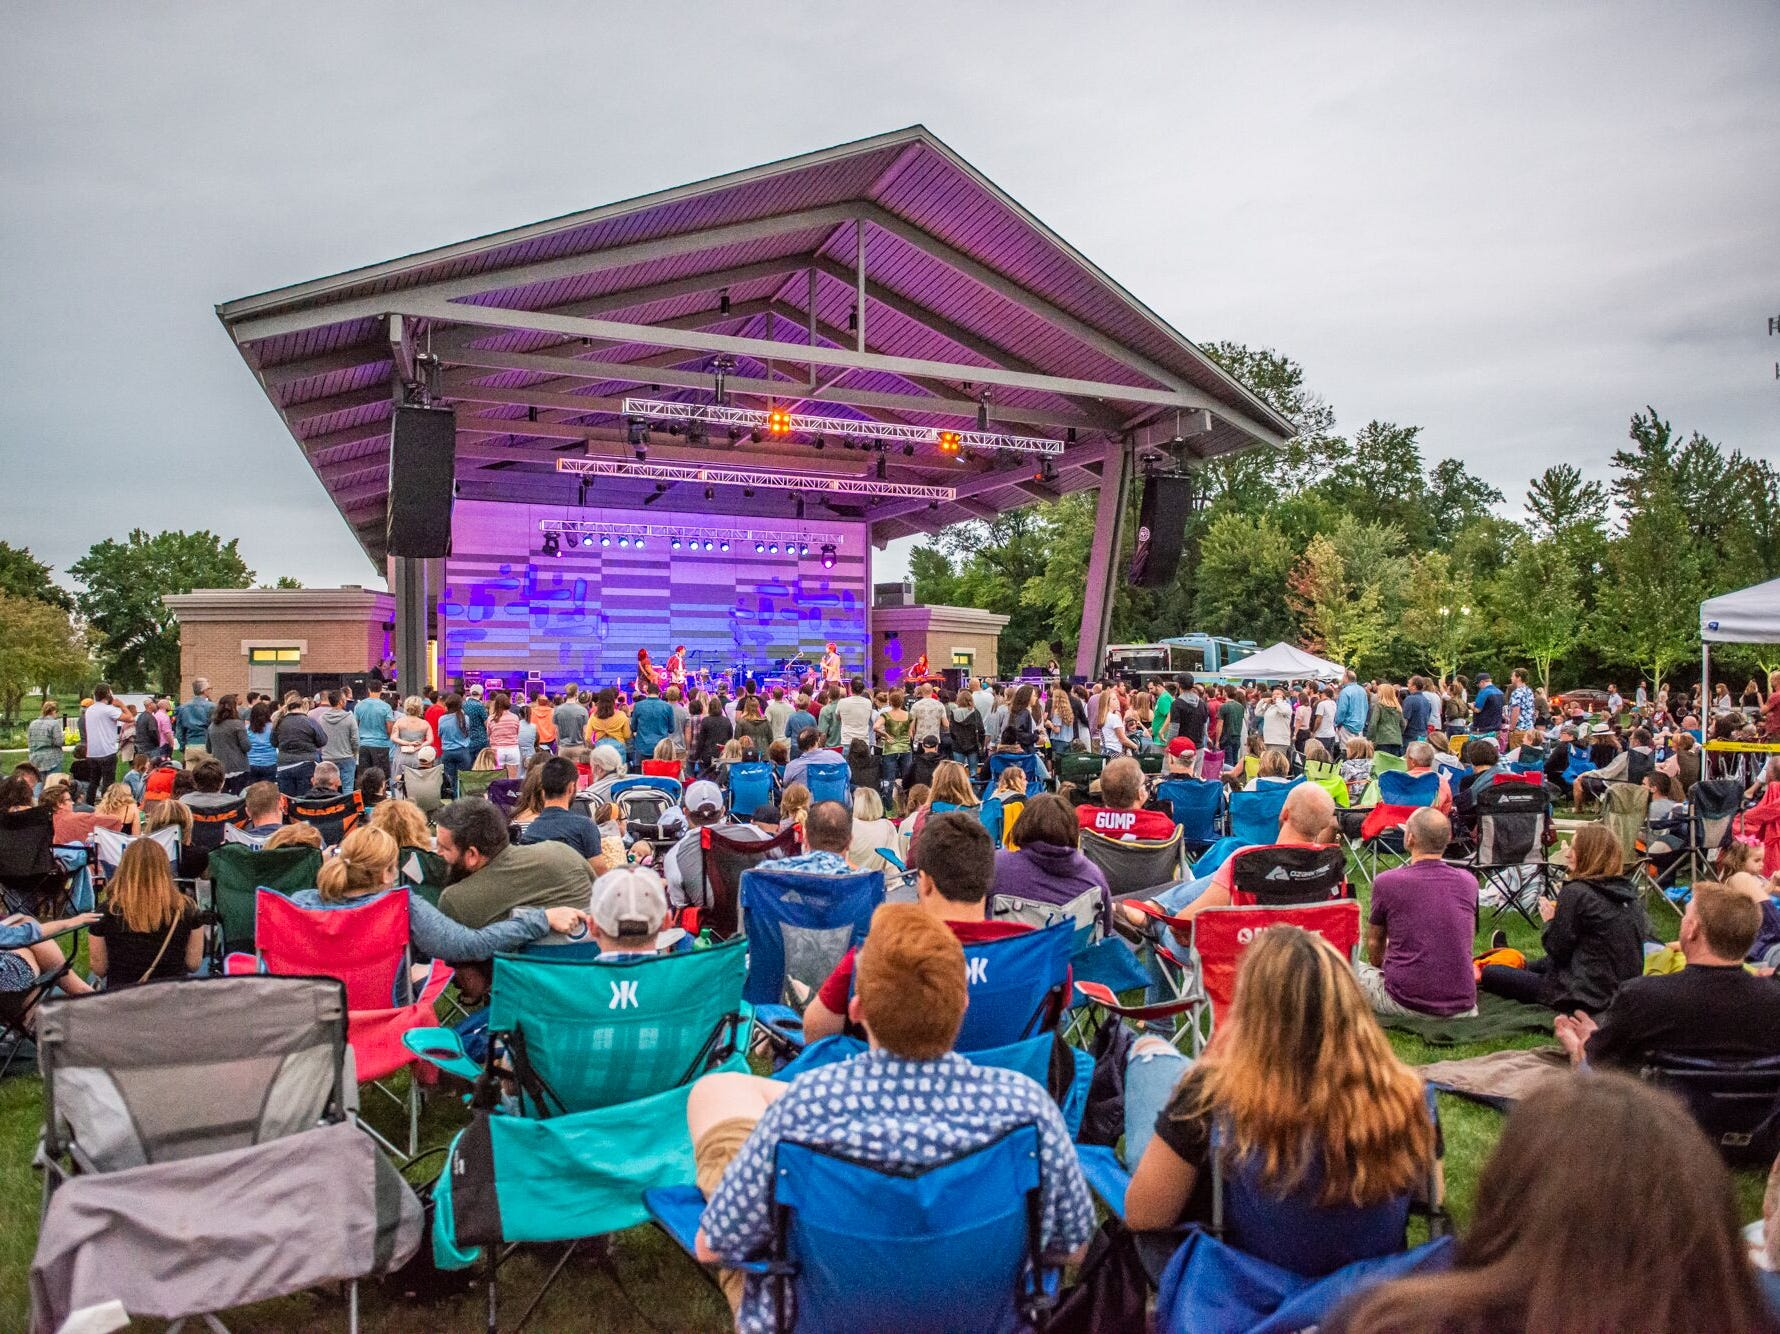 Houndmouth and Mt. Joy entertained fans at the Nickel Plate Amphitheater in Fishers, Ind., on Friday, Aug. 24, 2018.